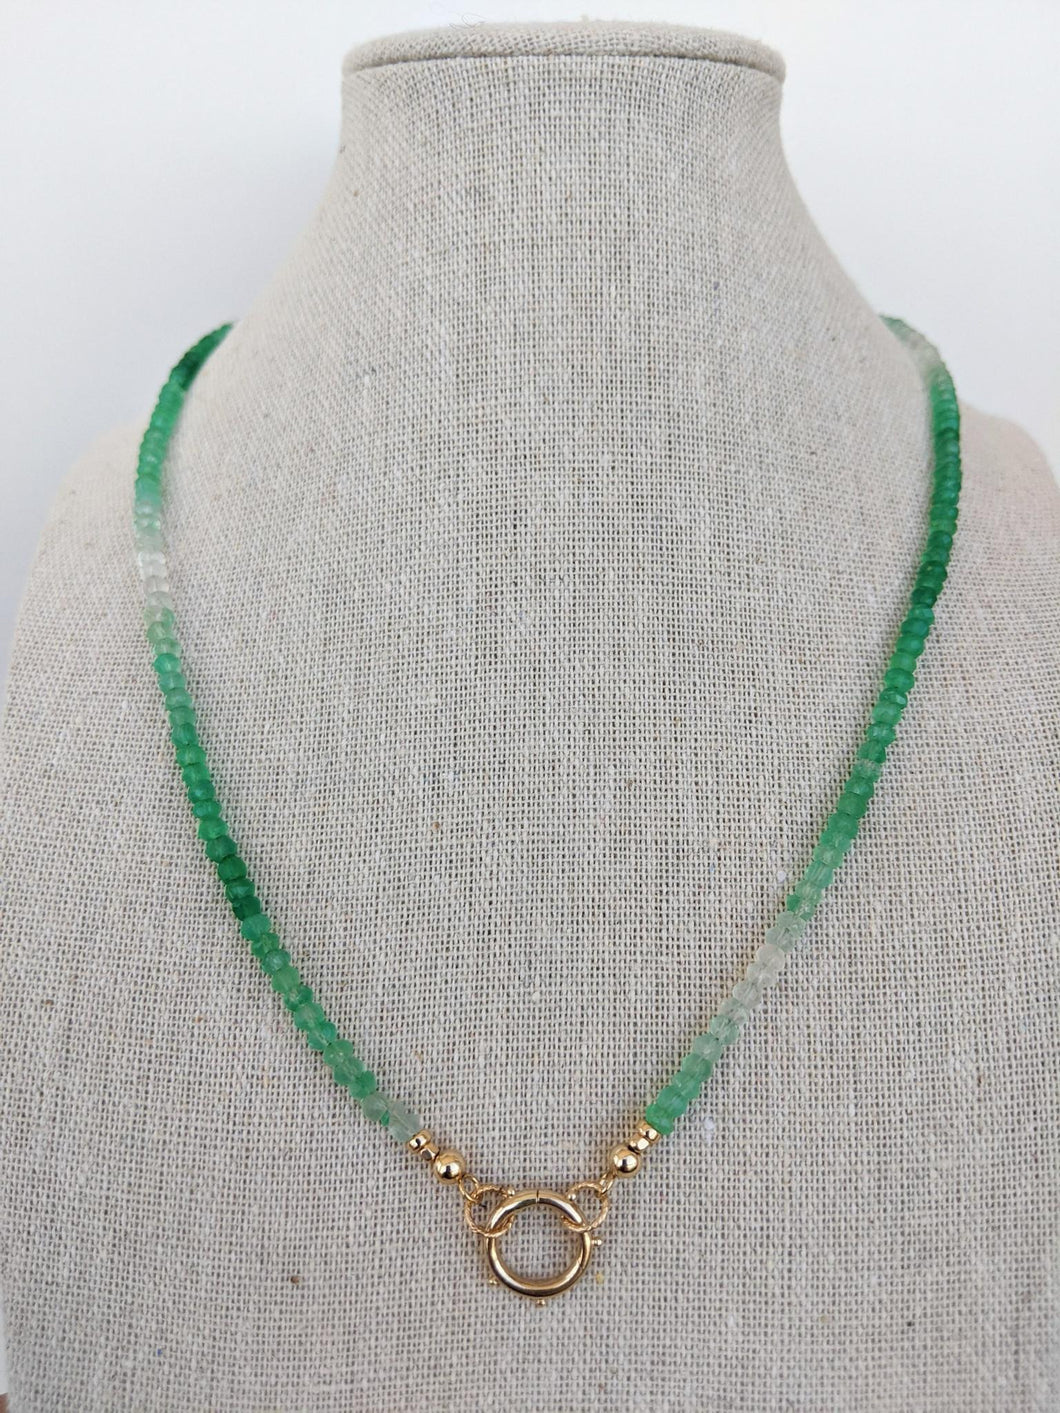 Open Loop Ombré Green Onyx Necklace